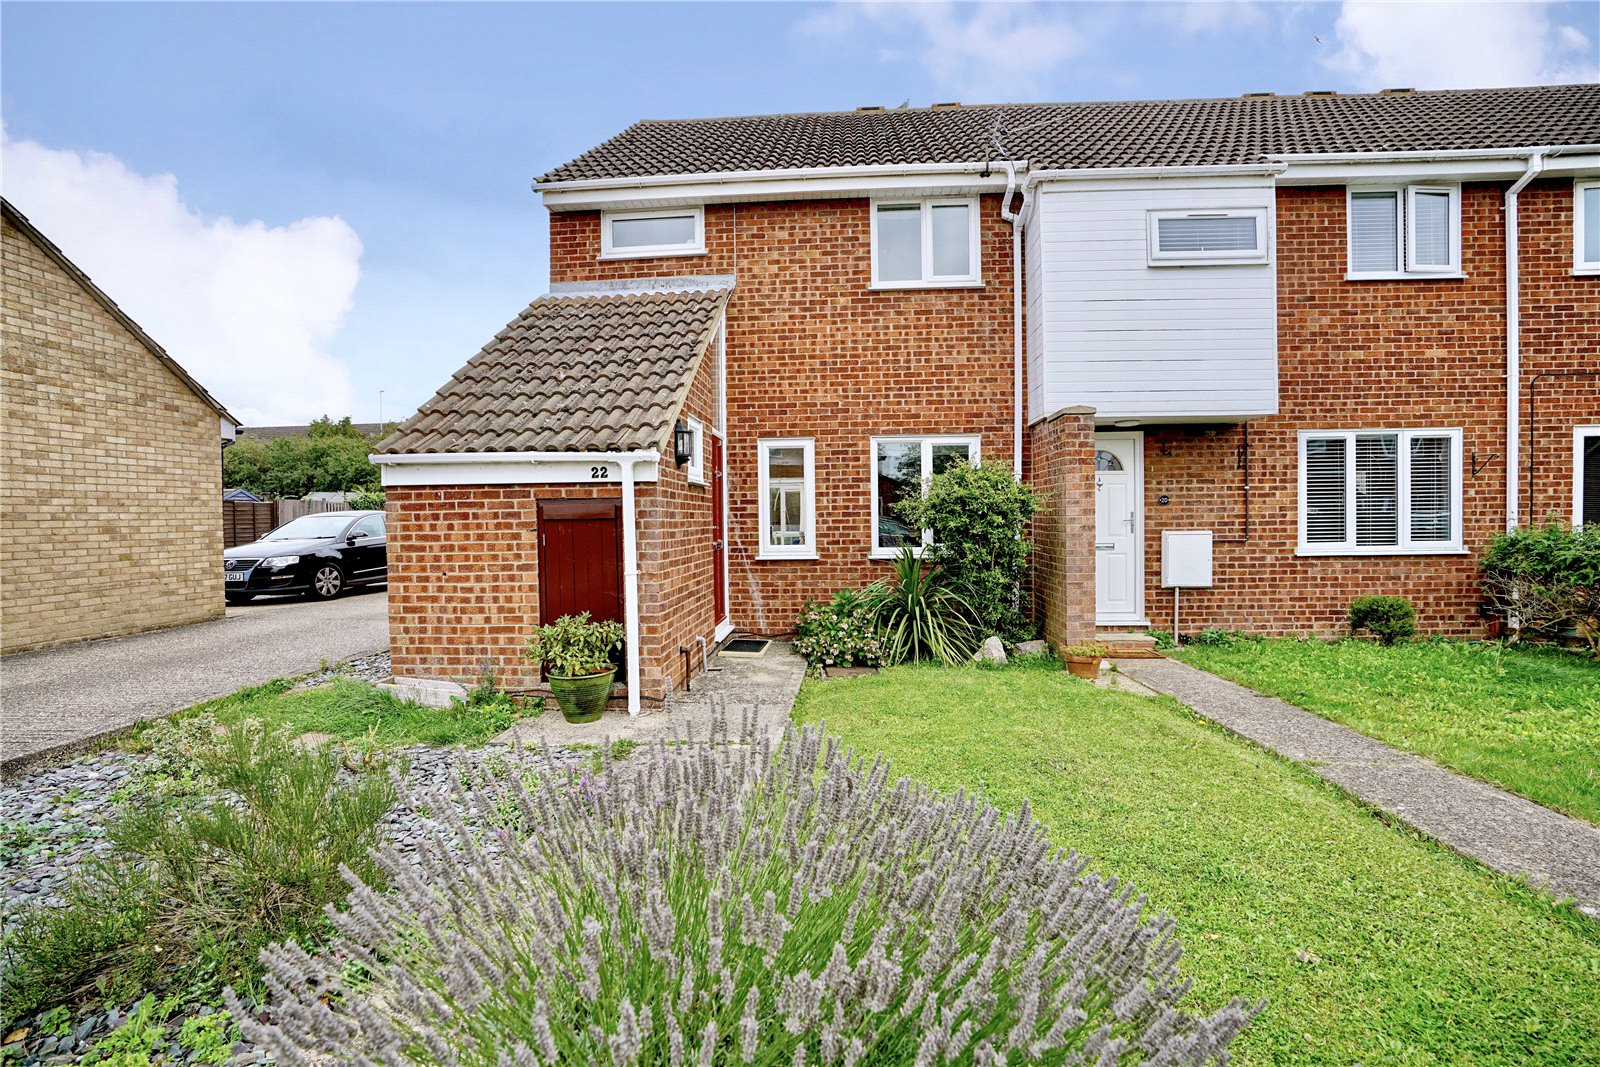 4 bed house for sale in St. Ives, PE27 3FT - Property Image 1